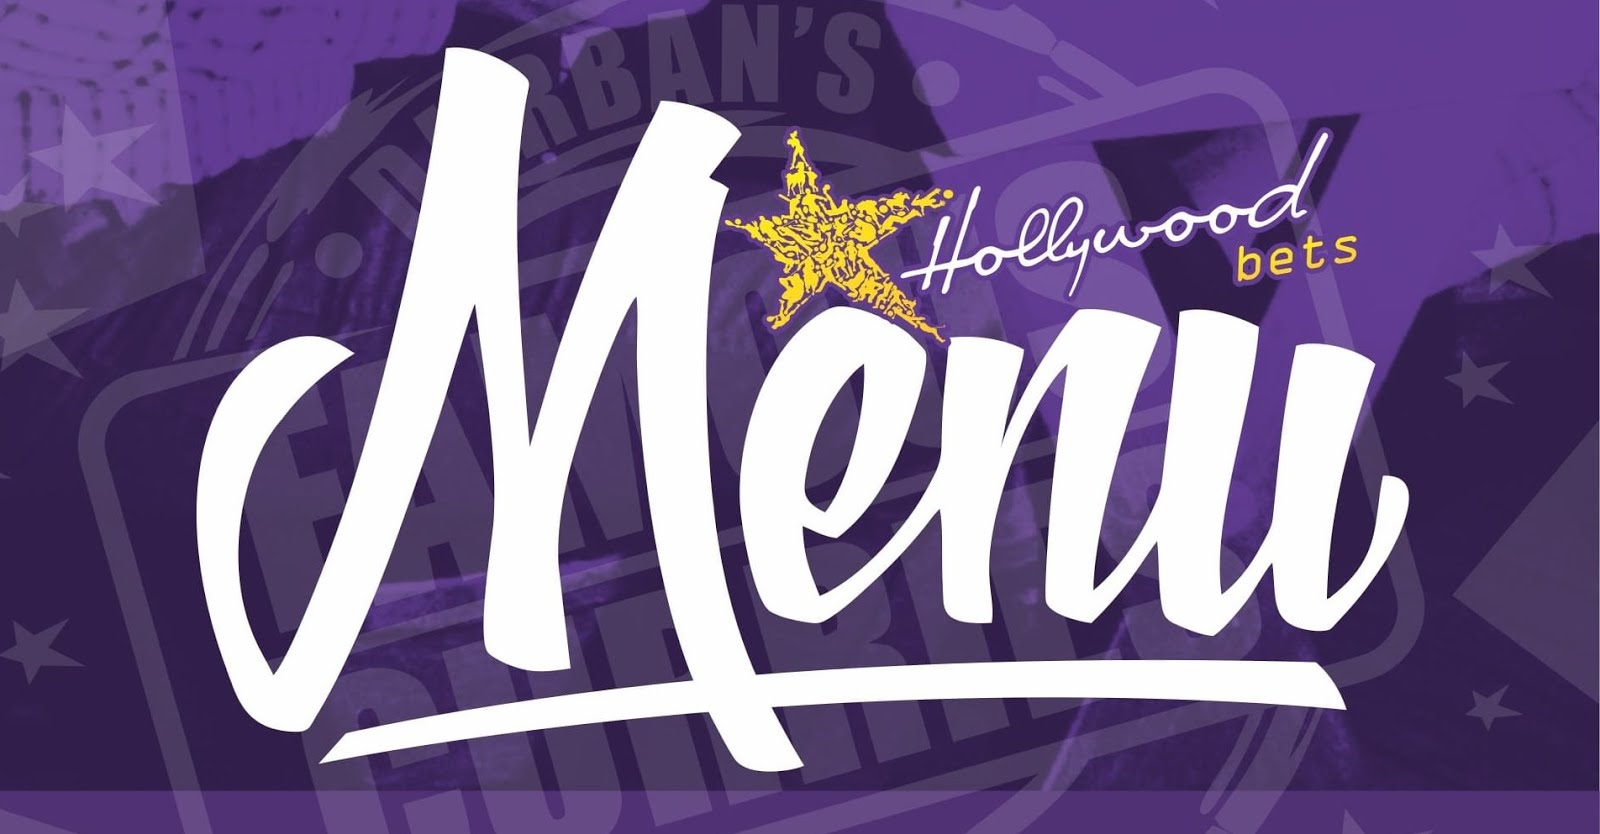 Hollywoodbets Menu - Bunny Bar - Bunny Chow